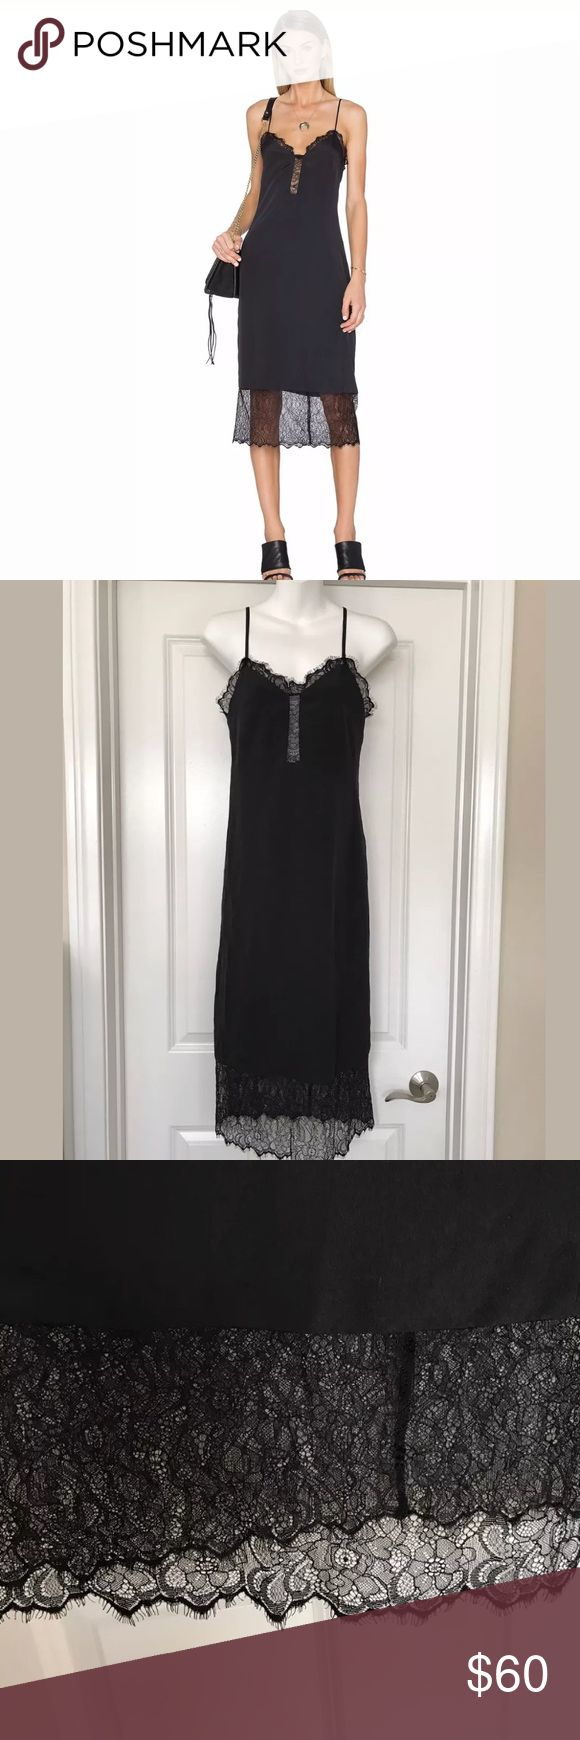 House of Harlow Emma black slip lace dress Sz Xs Lace